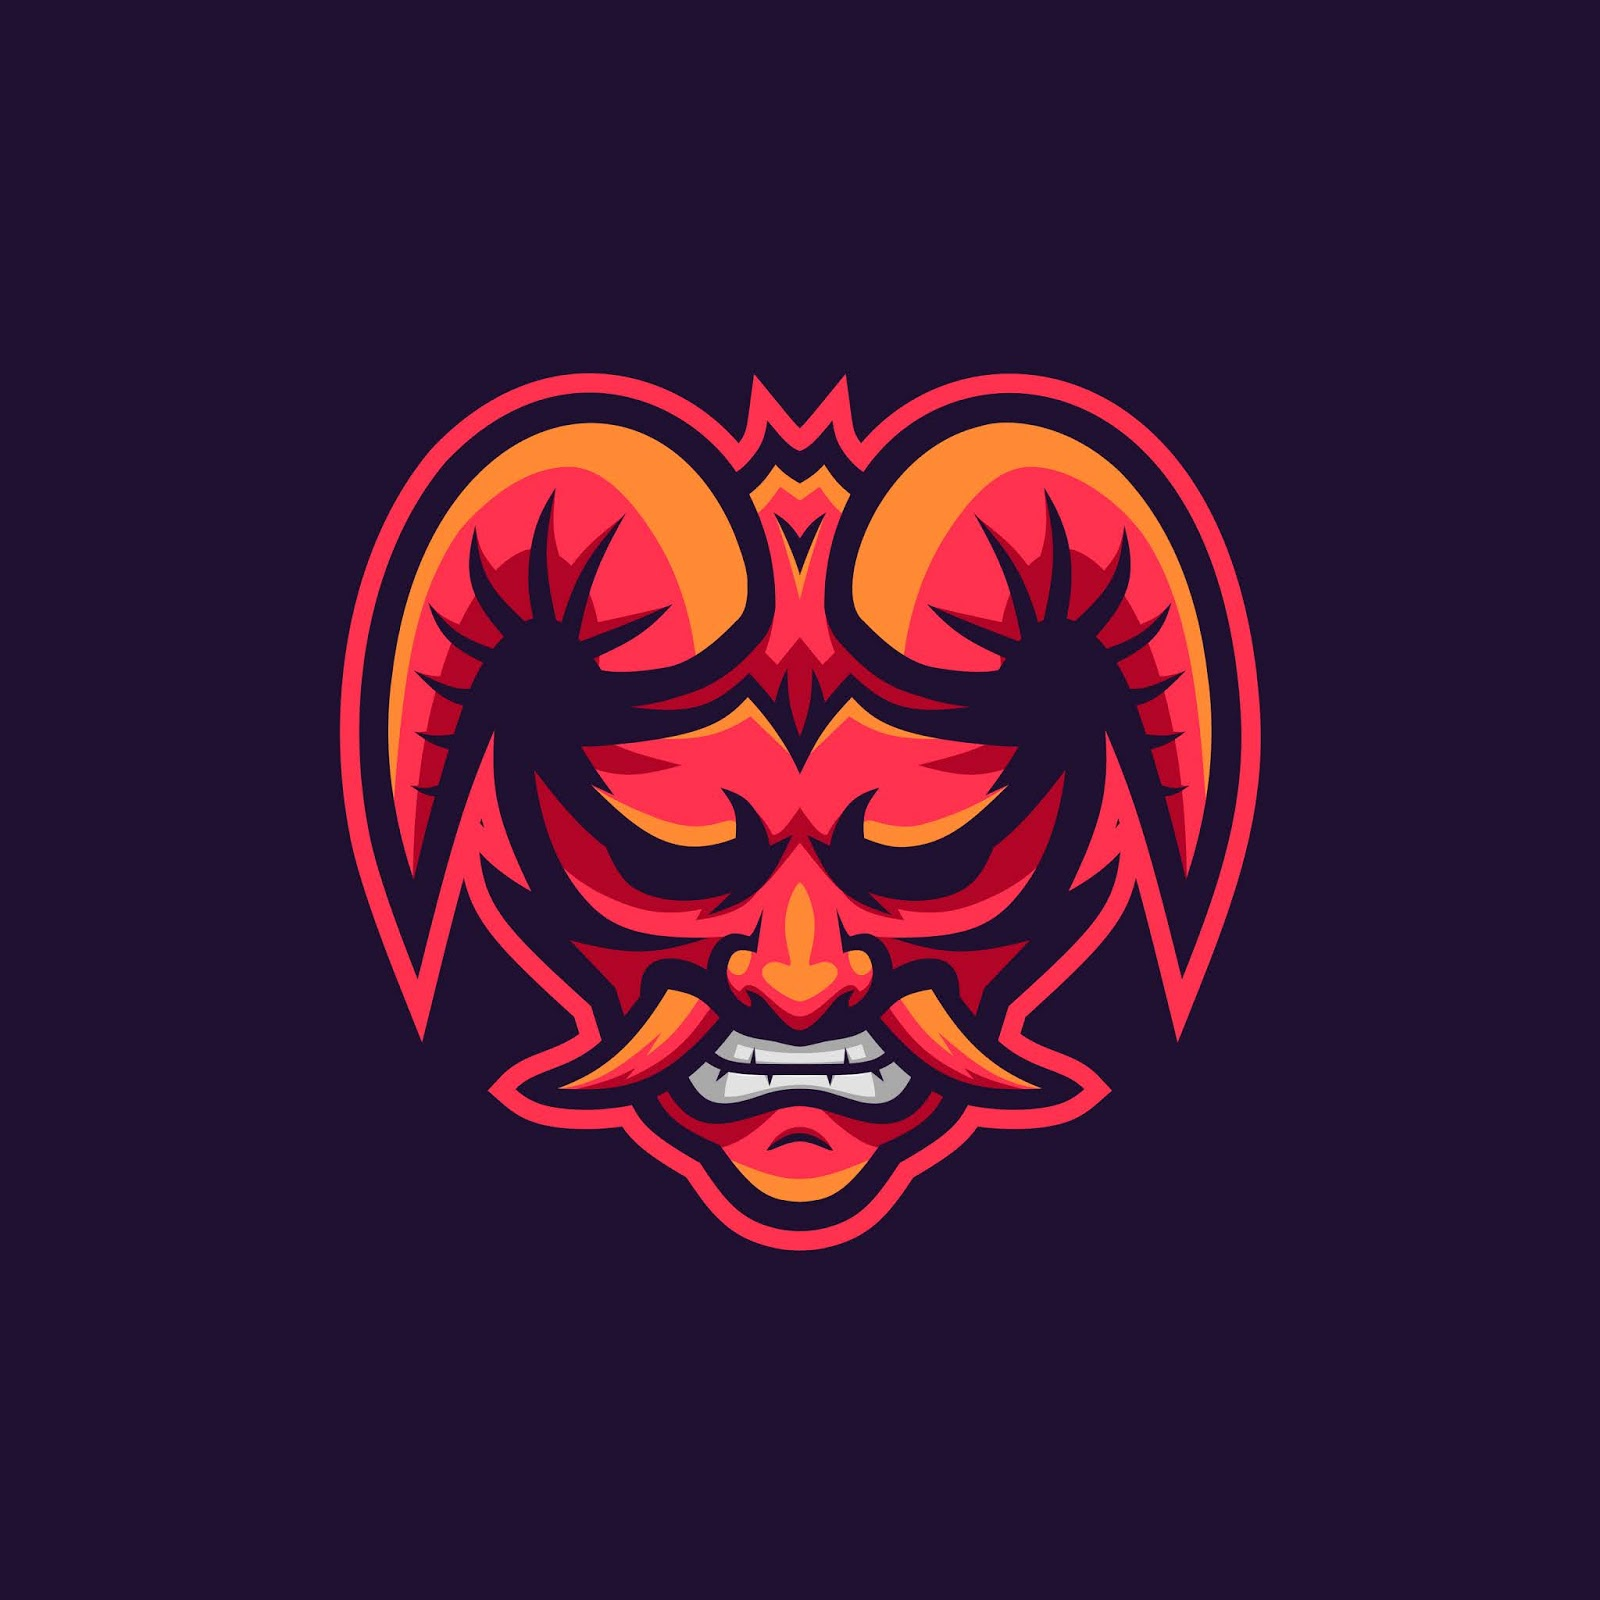 Oni Demon Mascot Logo Free Download Vector CDR, AI, EPS and PNG Formats